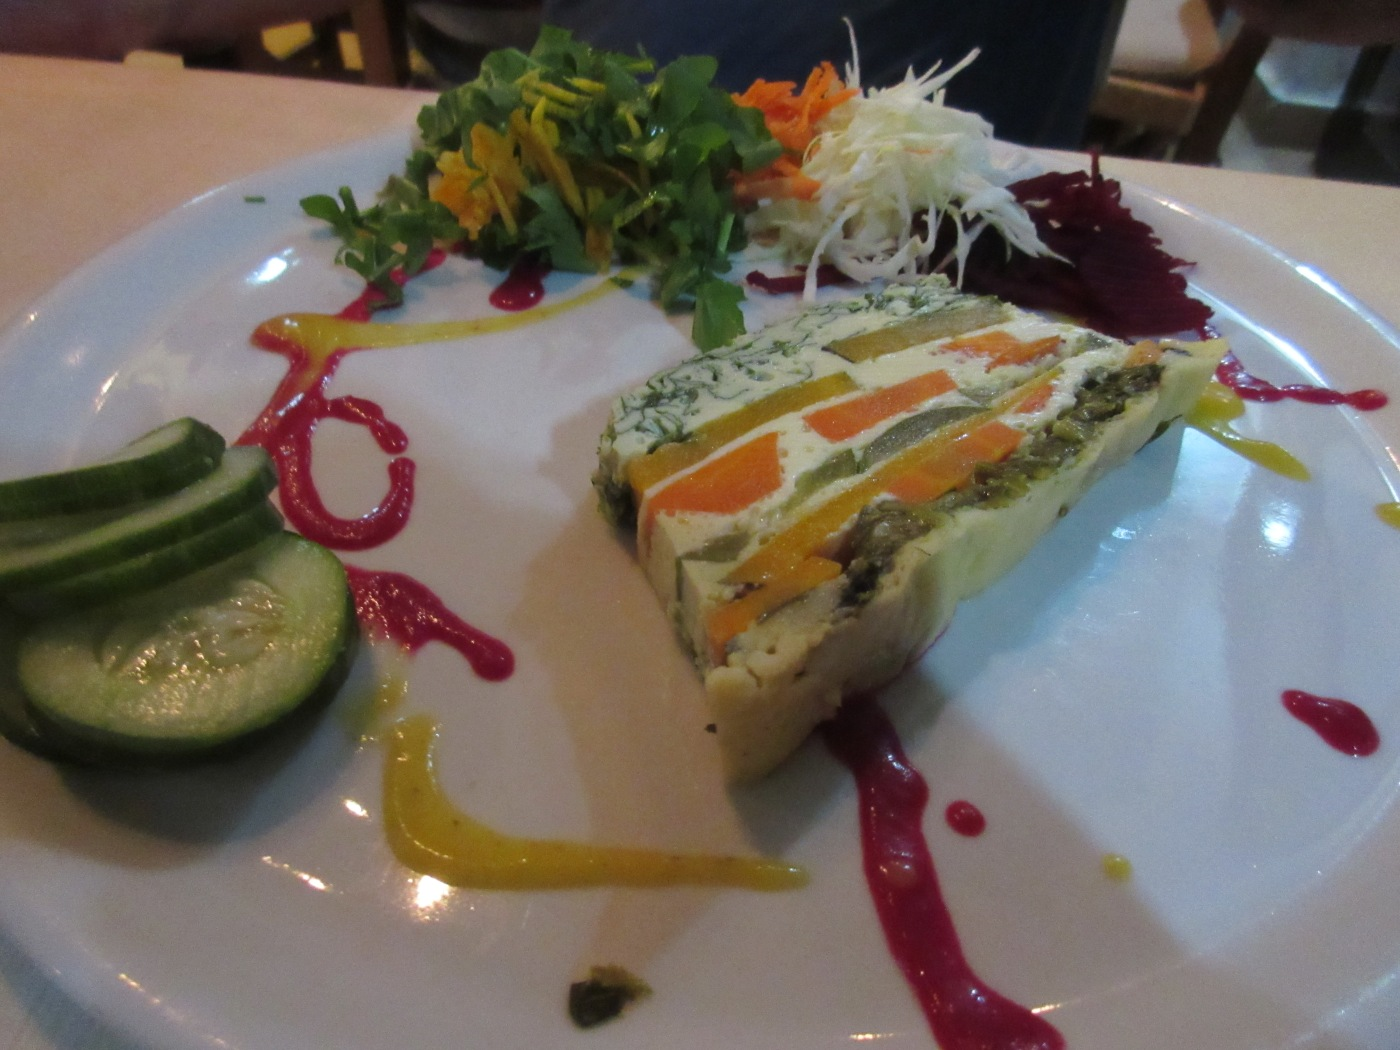 Galante - A Layered Tower of Cheese and Fresh Local Vegetables at El Romero Eco Restaurant in Las Terrazas, Cuba